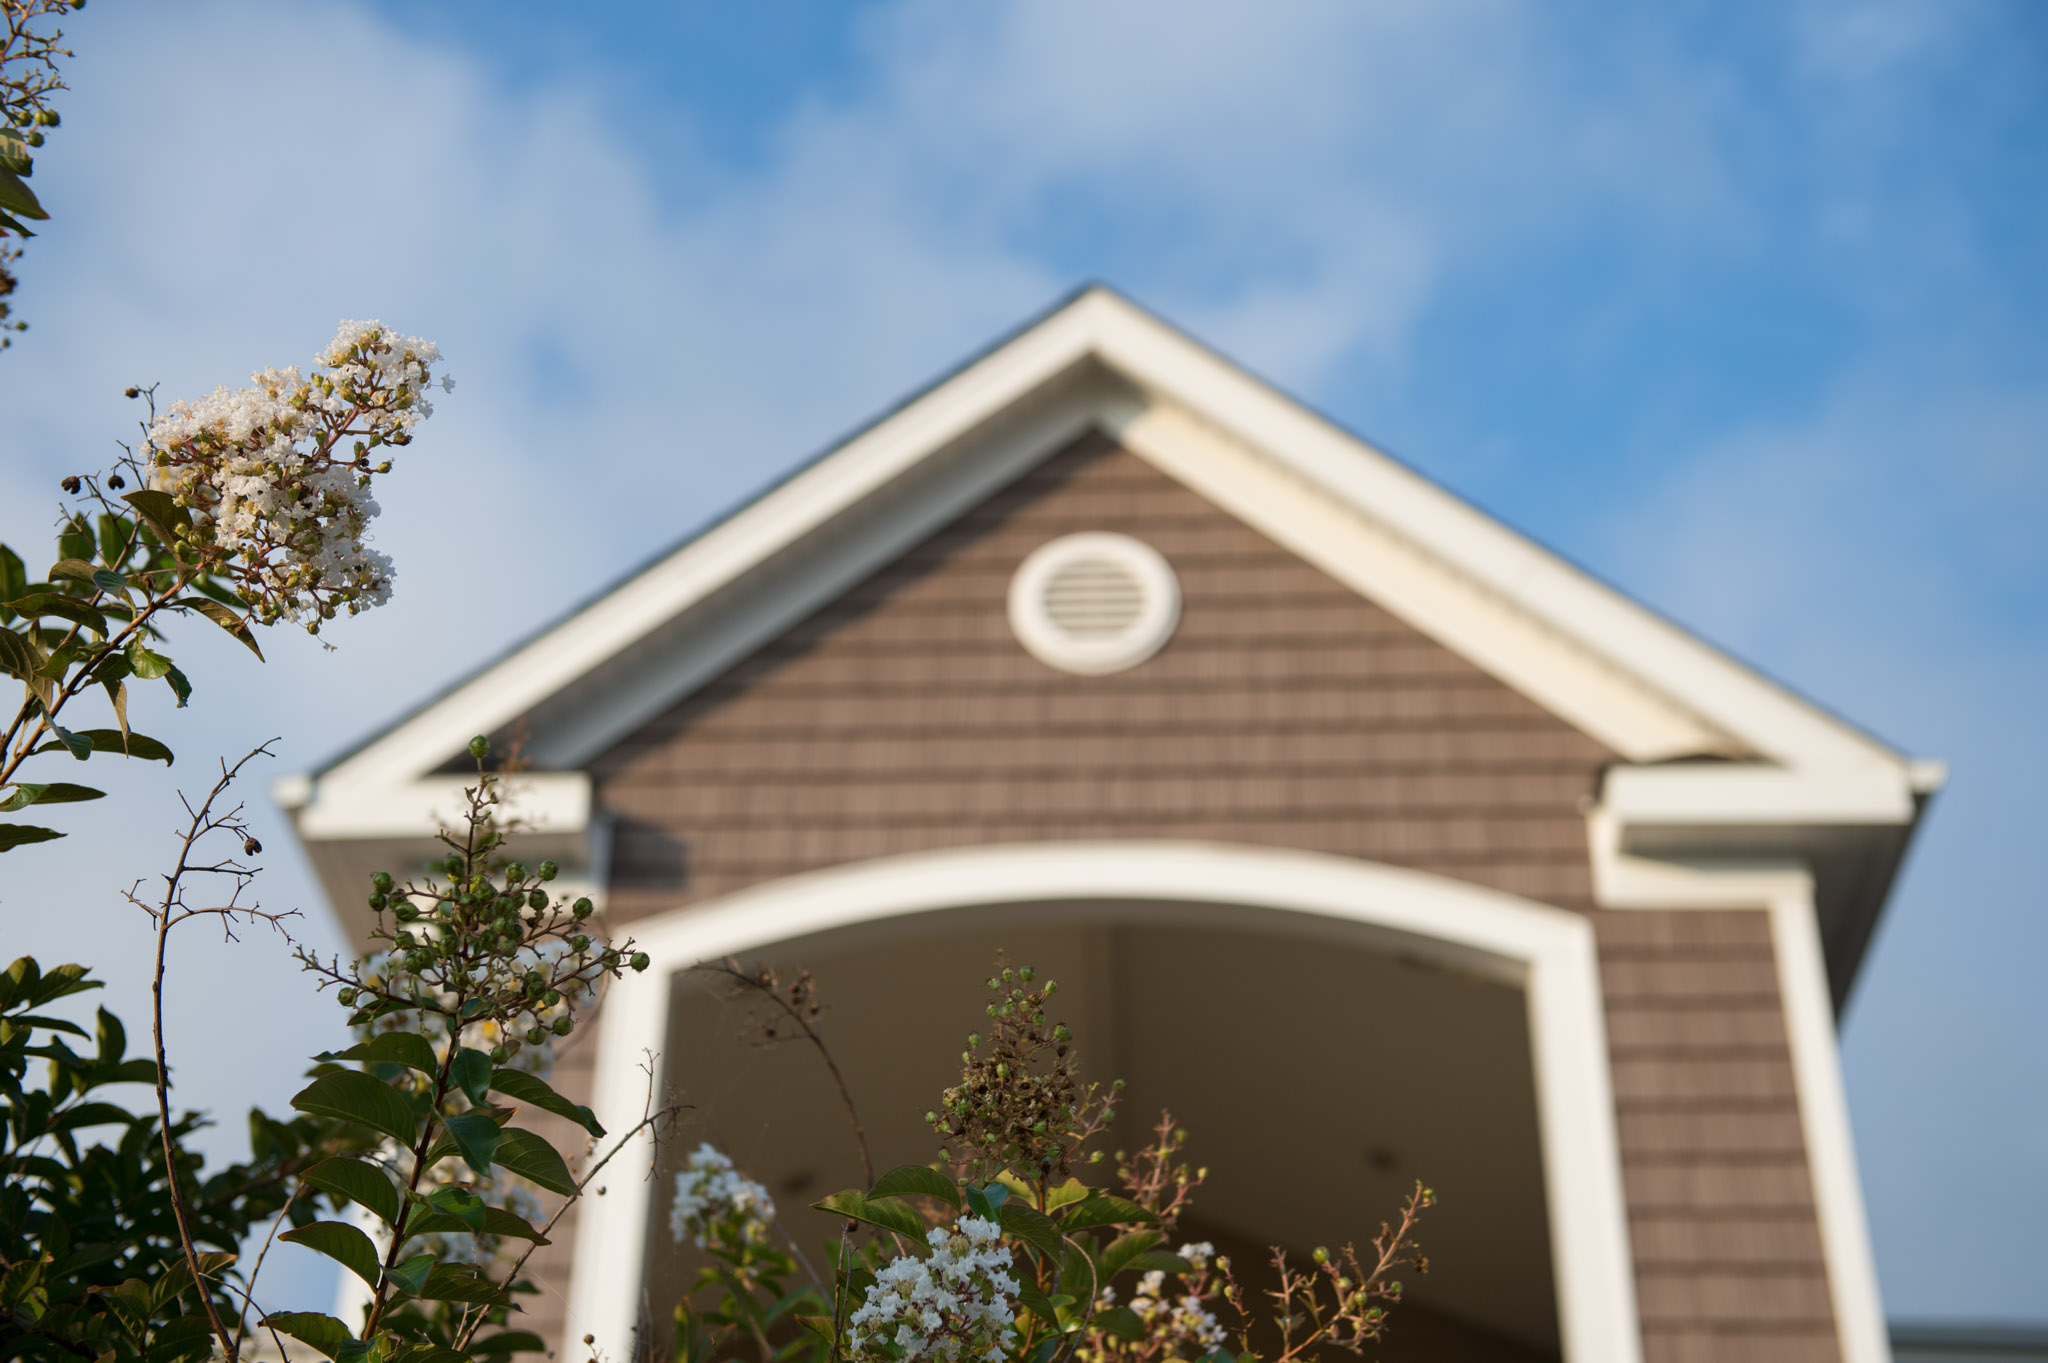 North 38 Exteriors for Web-1021.jpg